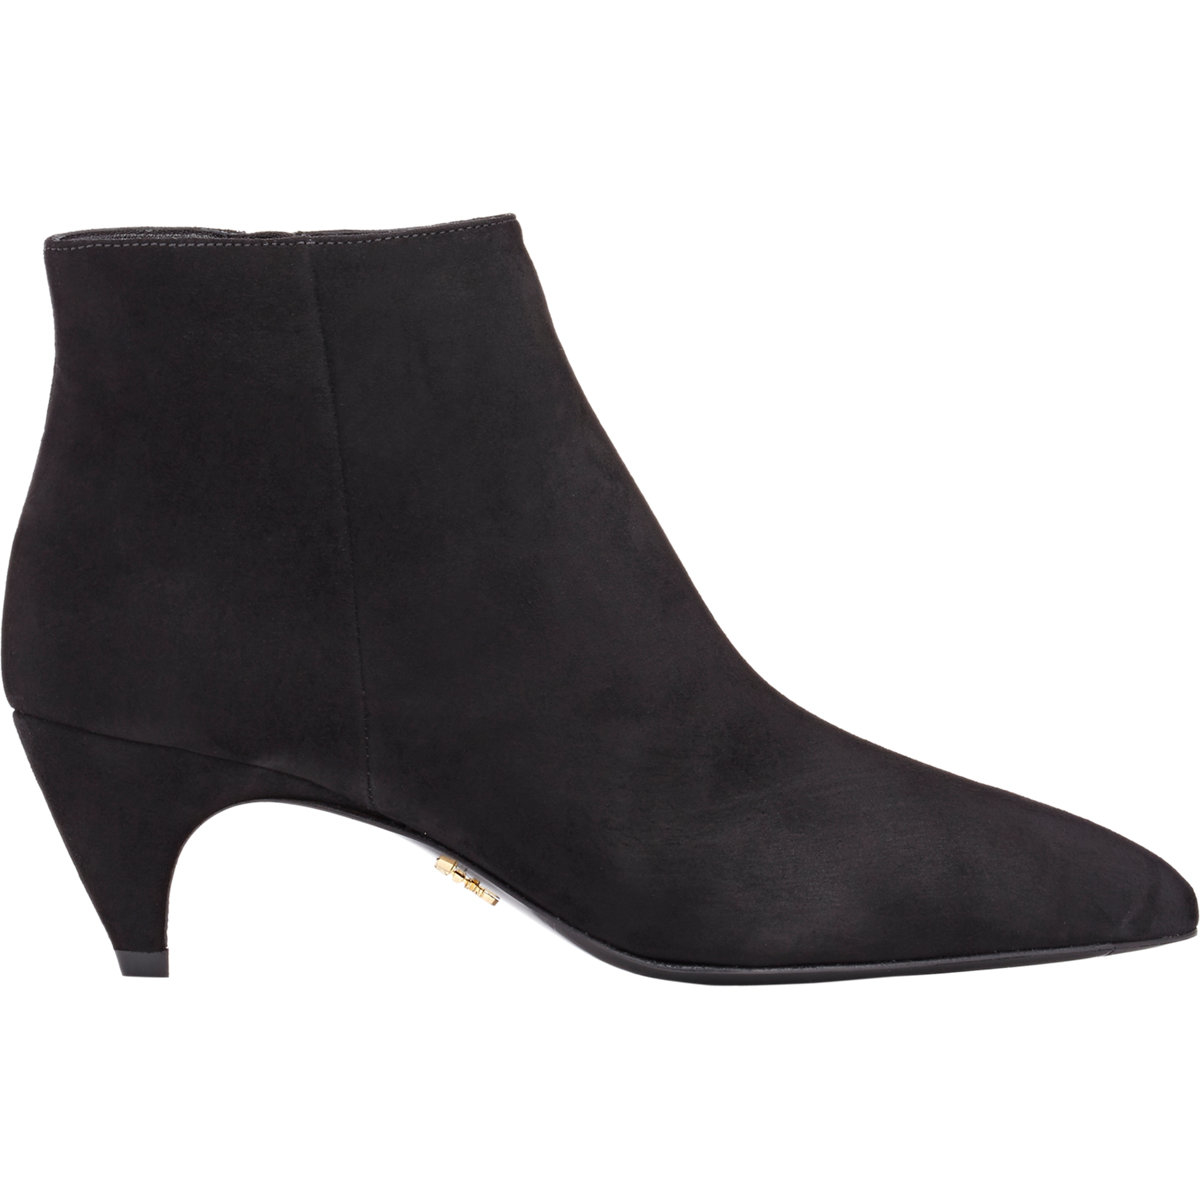 Womens Curved-Heel Suede Ankle Boots Prada eI2Xsc